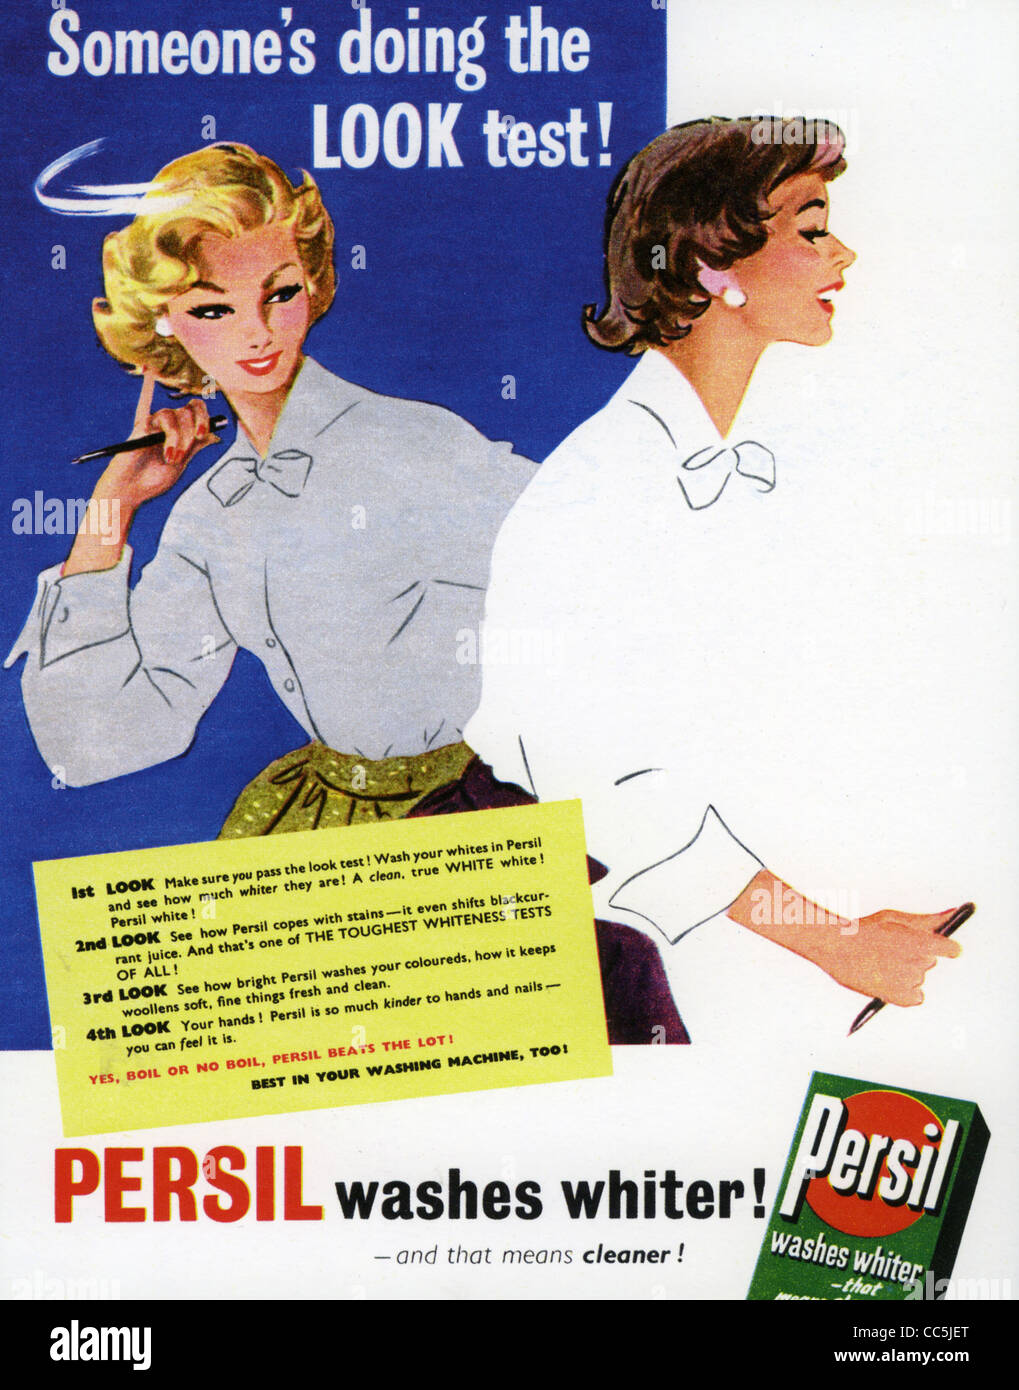 Persil Advert 1950s High Resolution Stock Photography and Images - Alamy